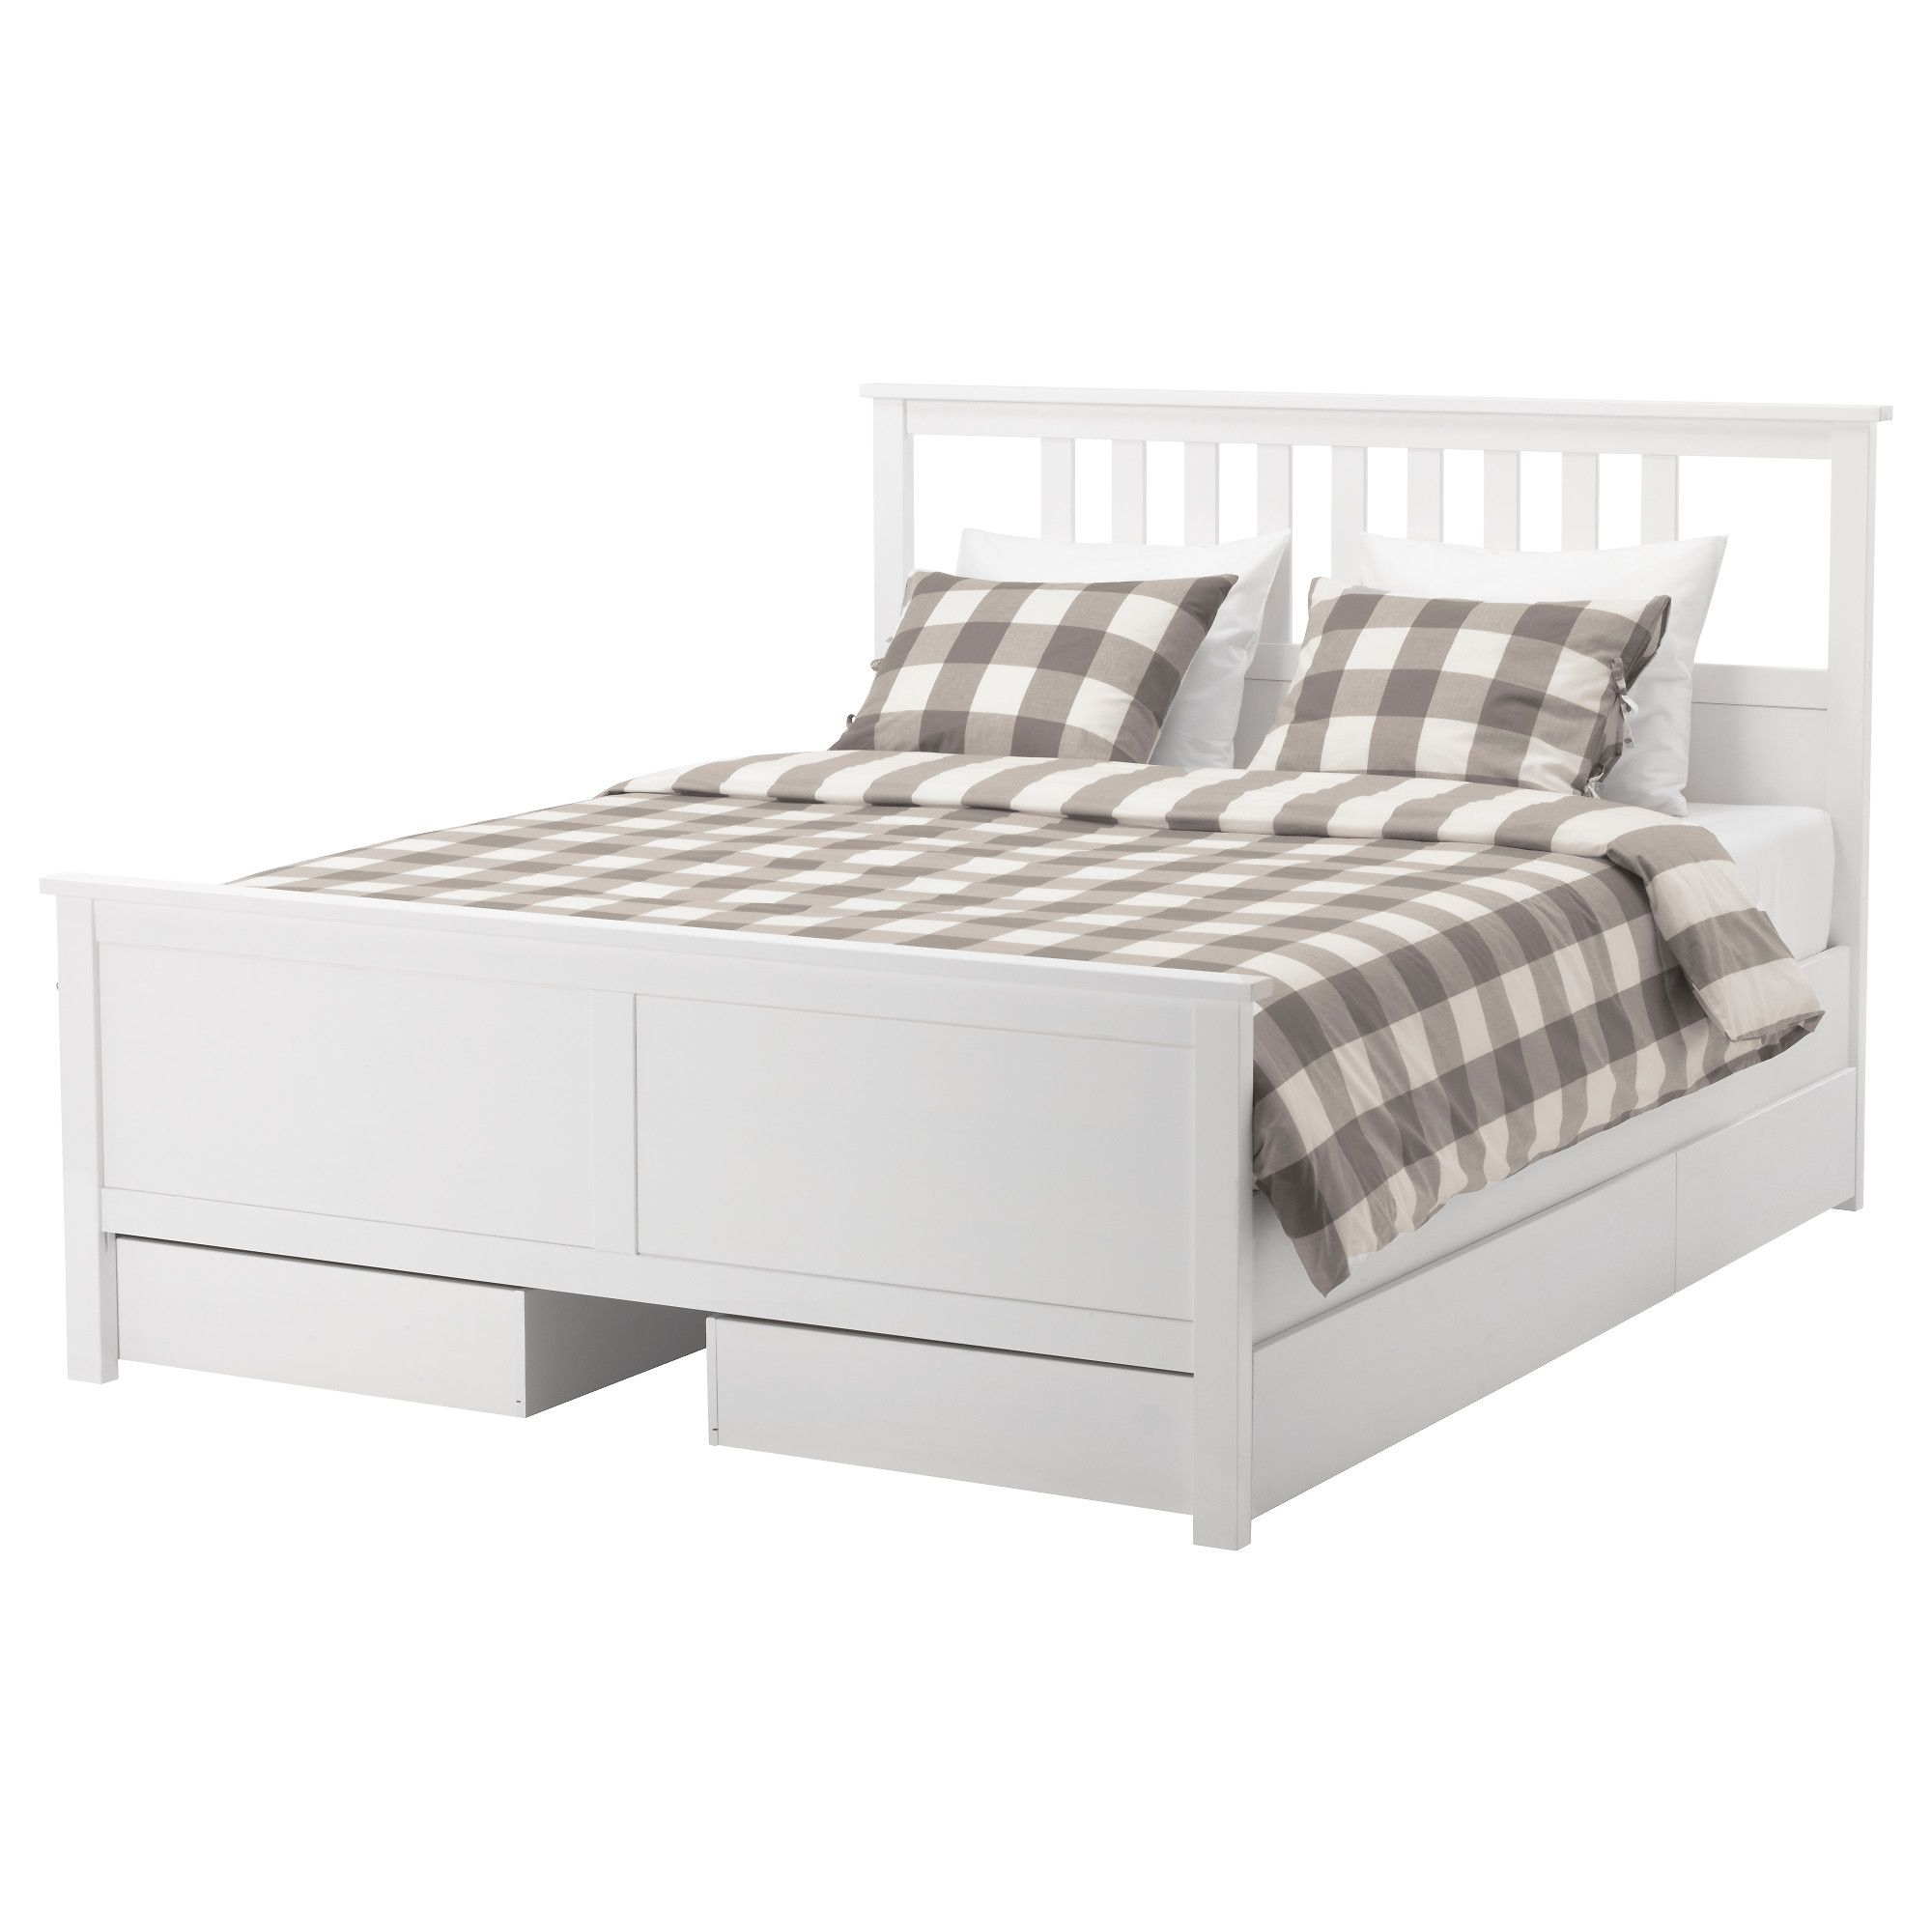 Hemnes Bed Frame With 4 Storage Bo White Stain Luröy